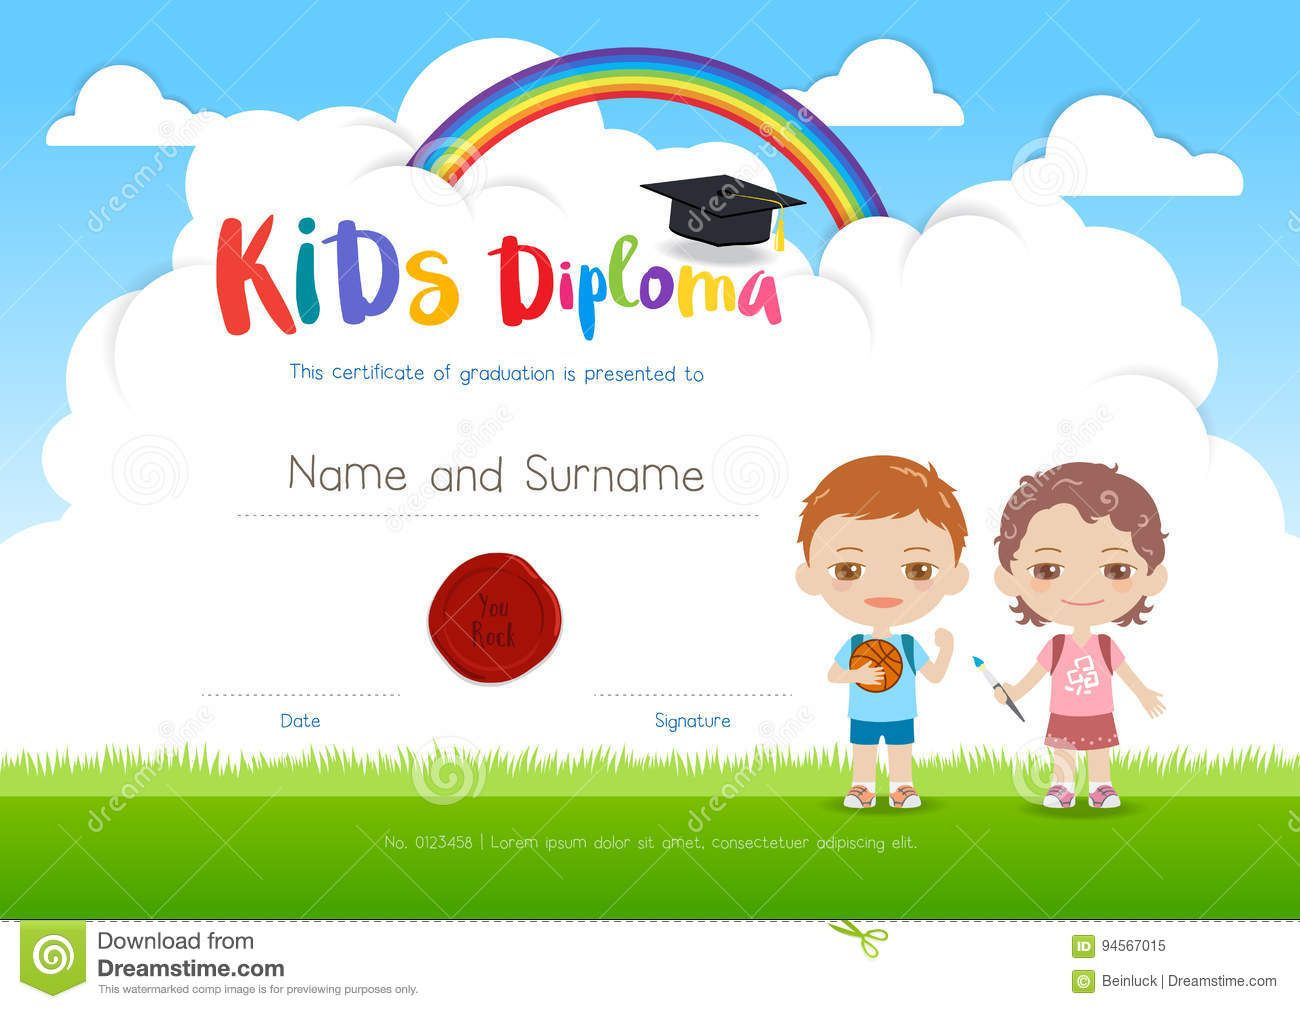 Colorful Kids Summer Camp Diploma Certificate Template In within Best Certificate For Summer Camp Free Templates 2020